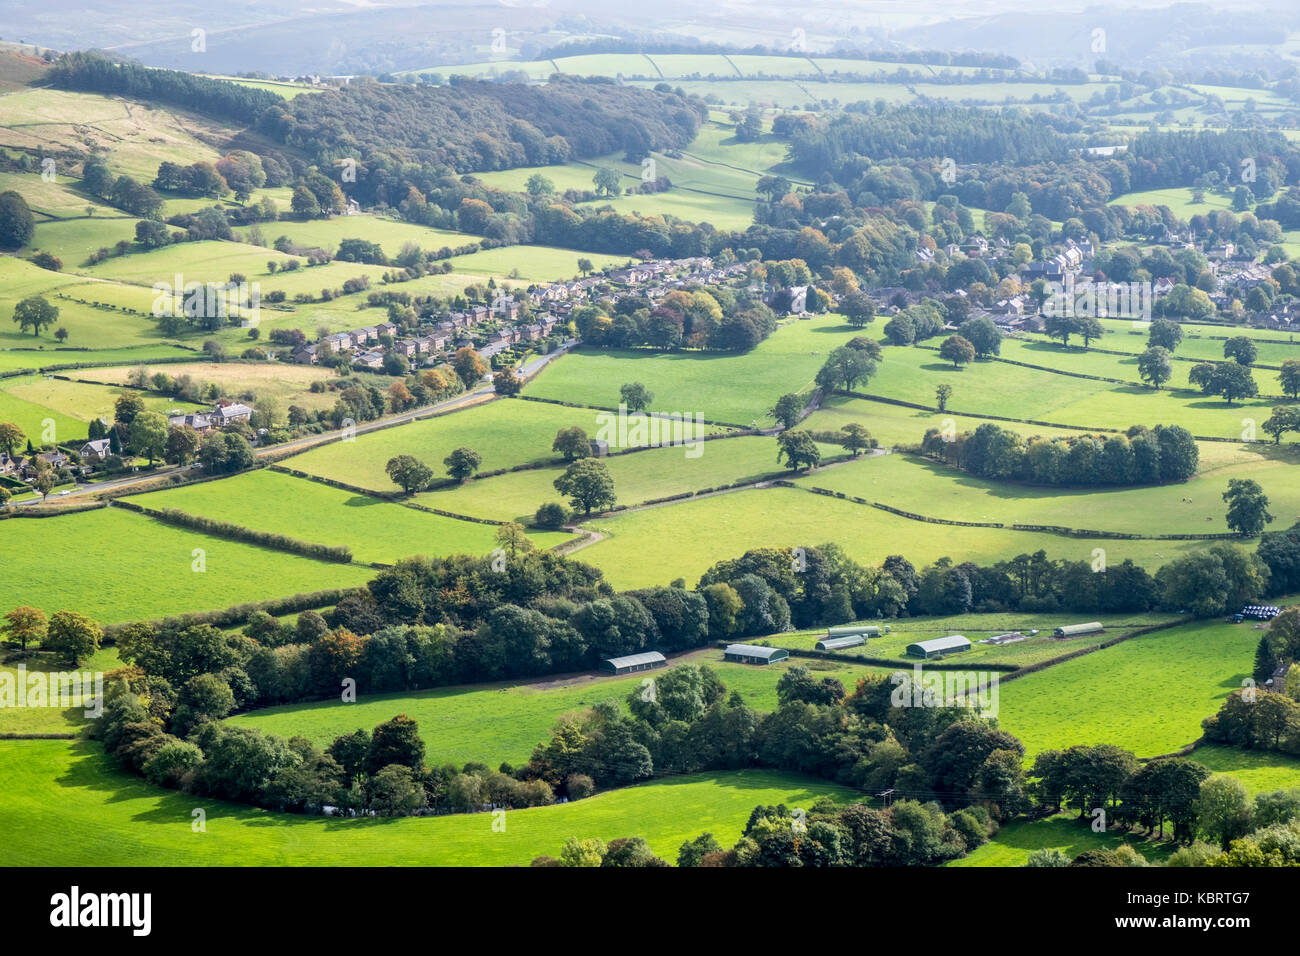 The village of Bamford and the surrounding area seen from Win hill, Derbyshire, Peak District, England, UK - Stock Image